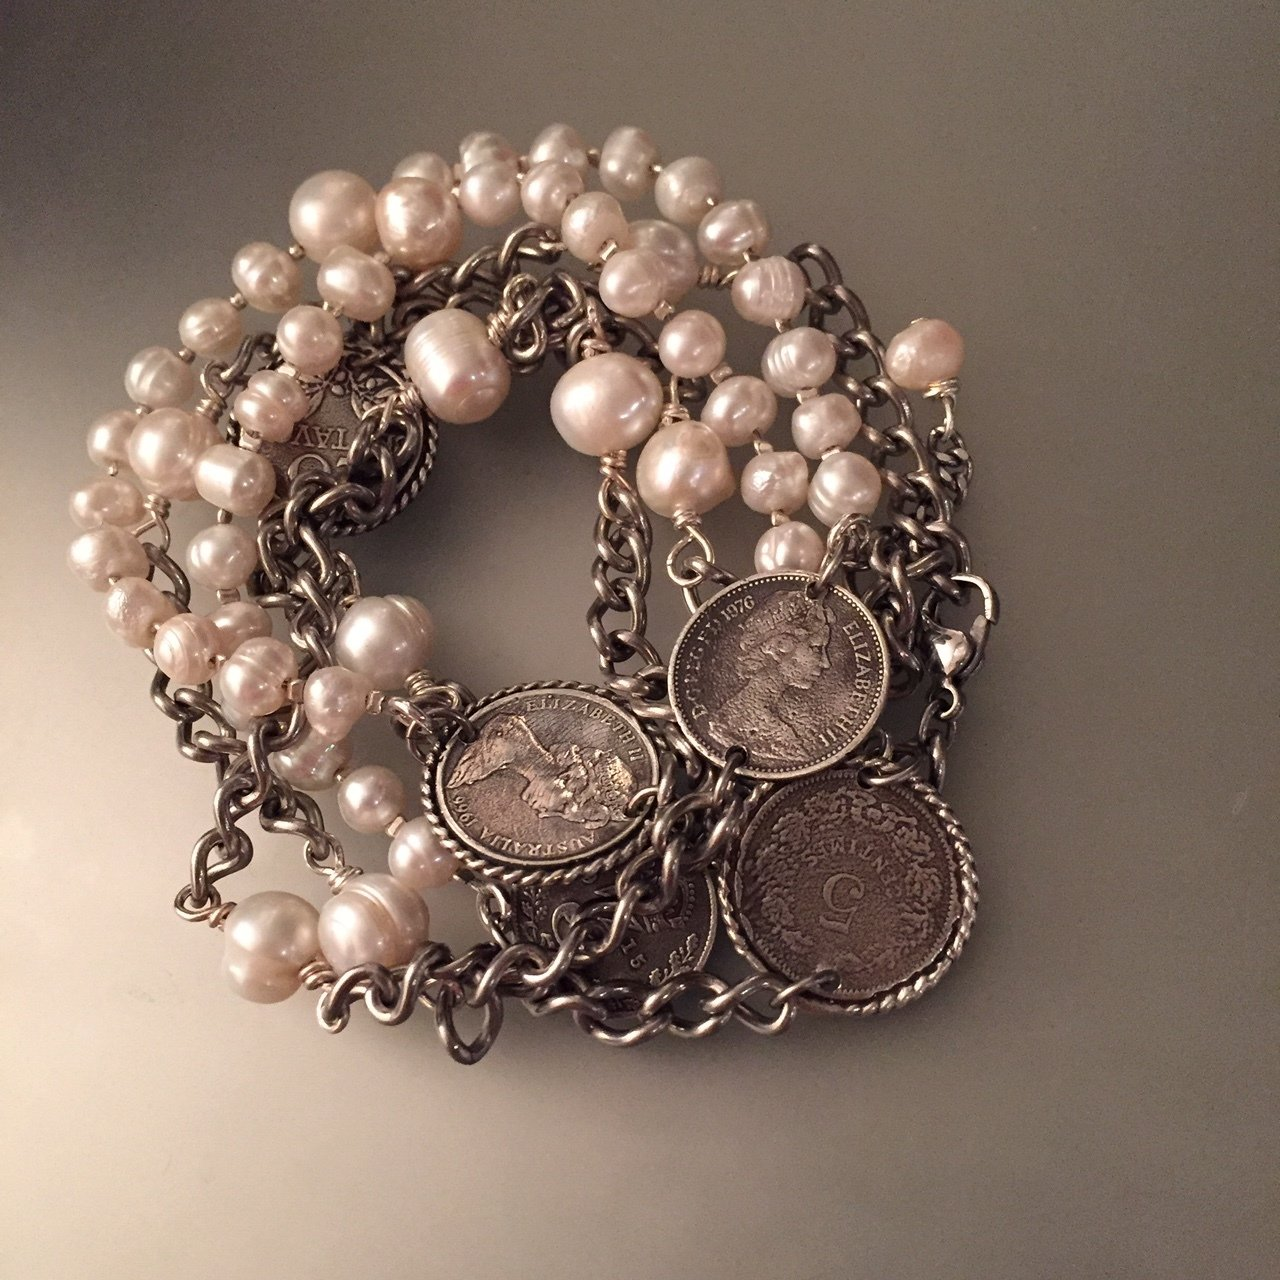 Pile of Pearls and Coins